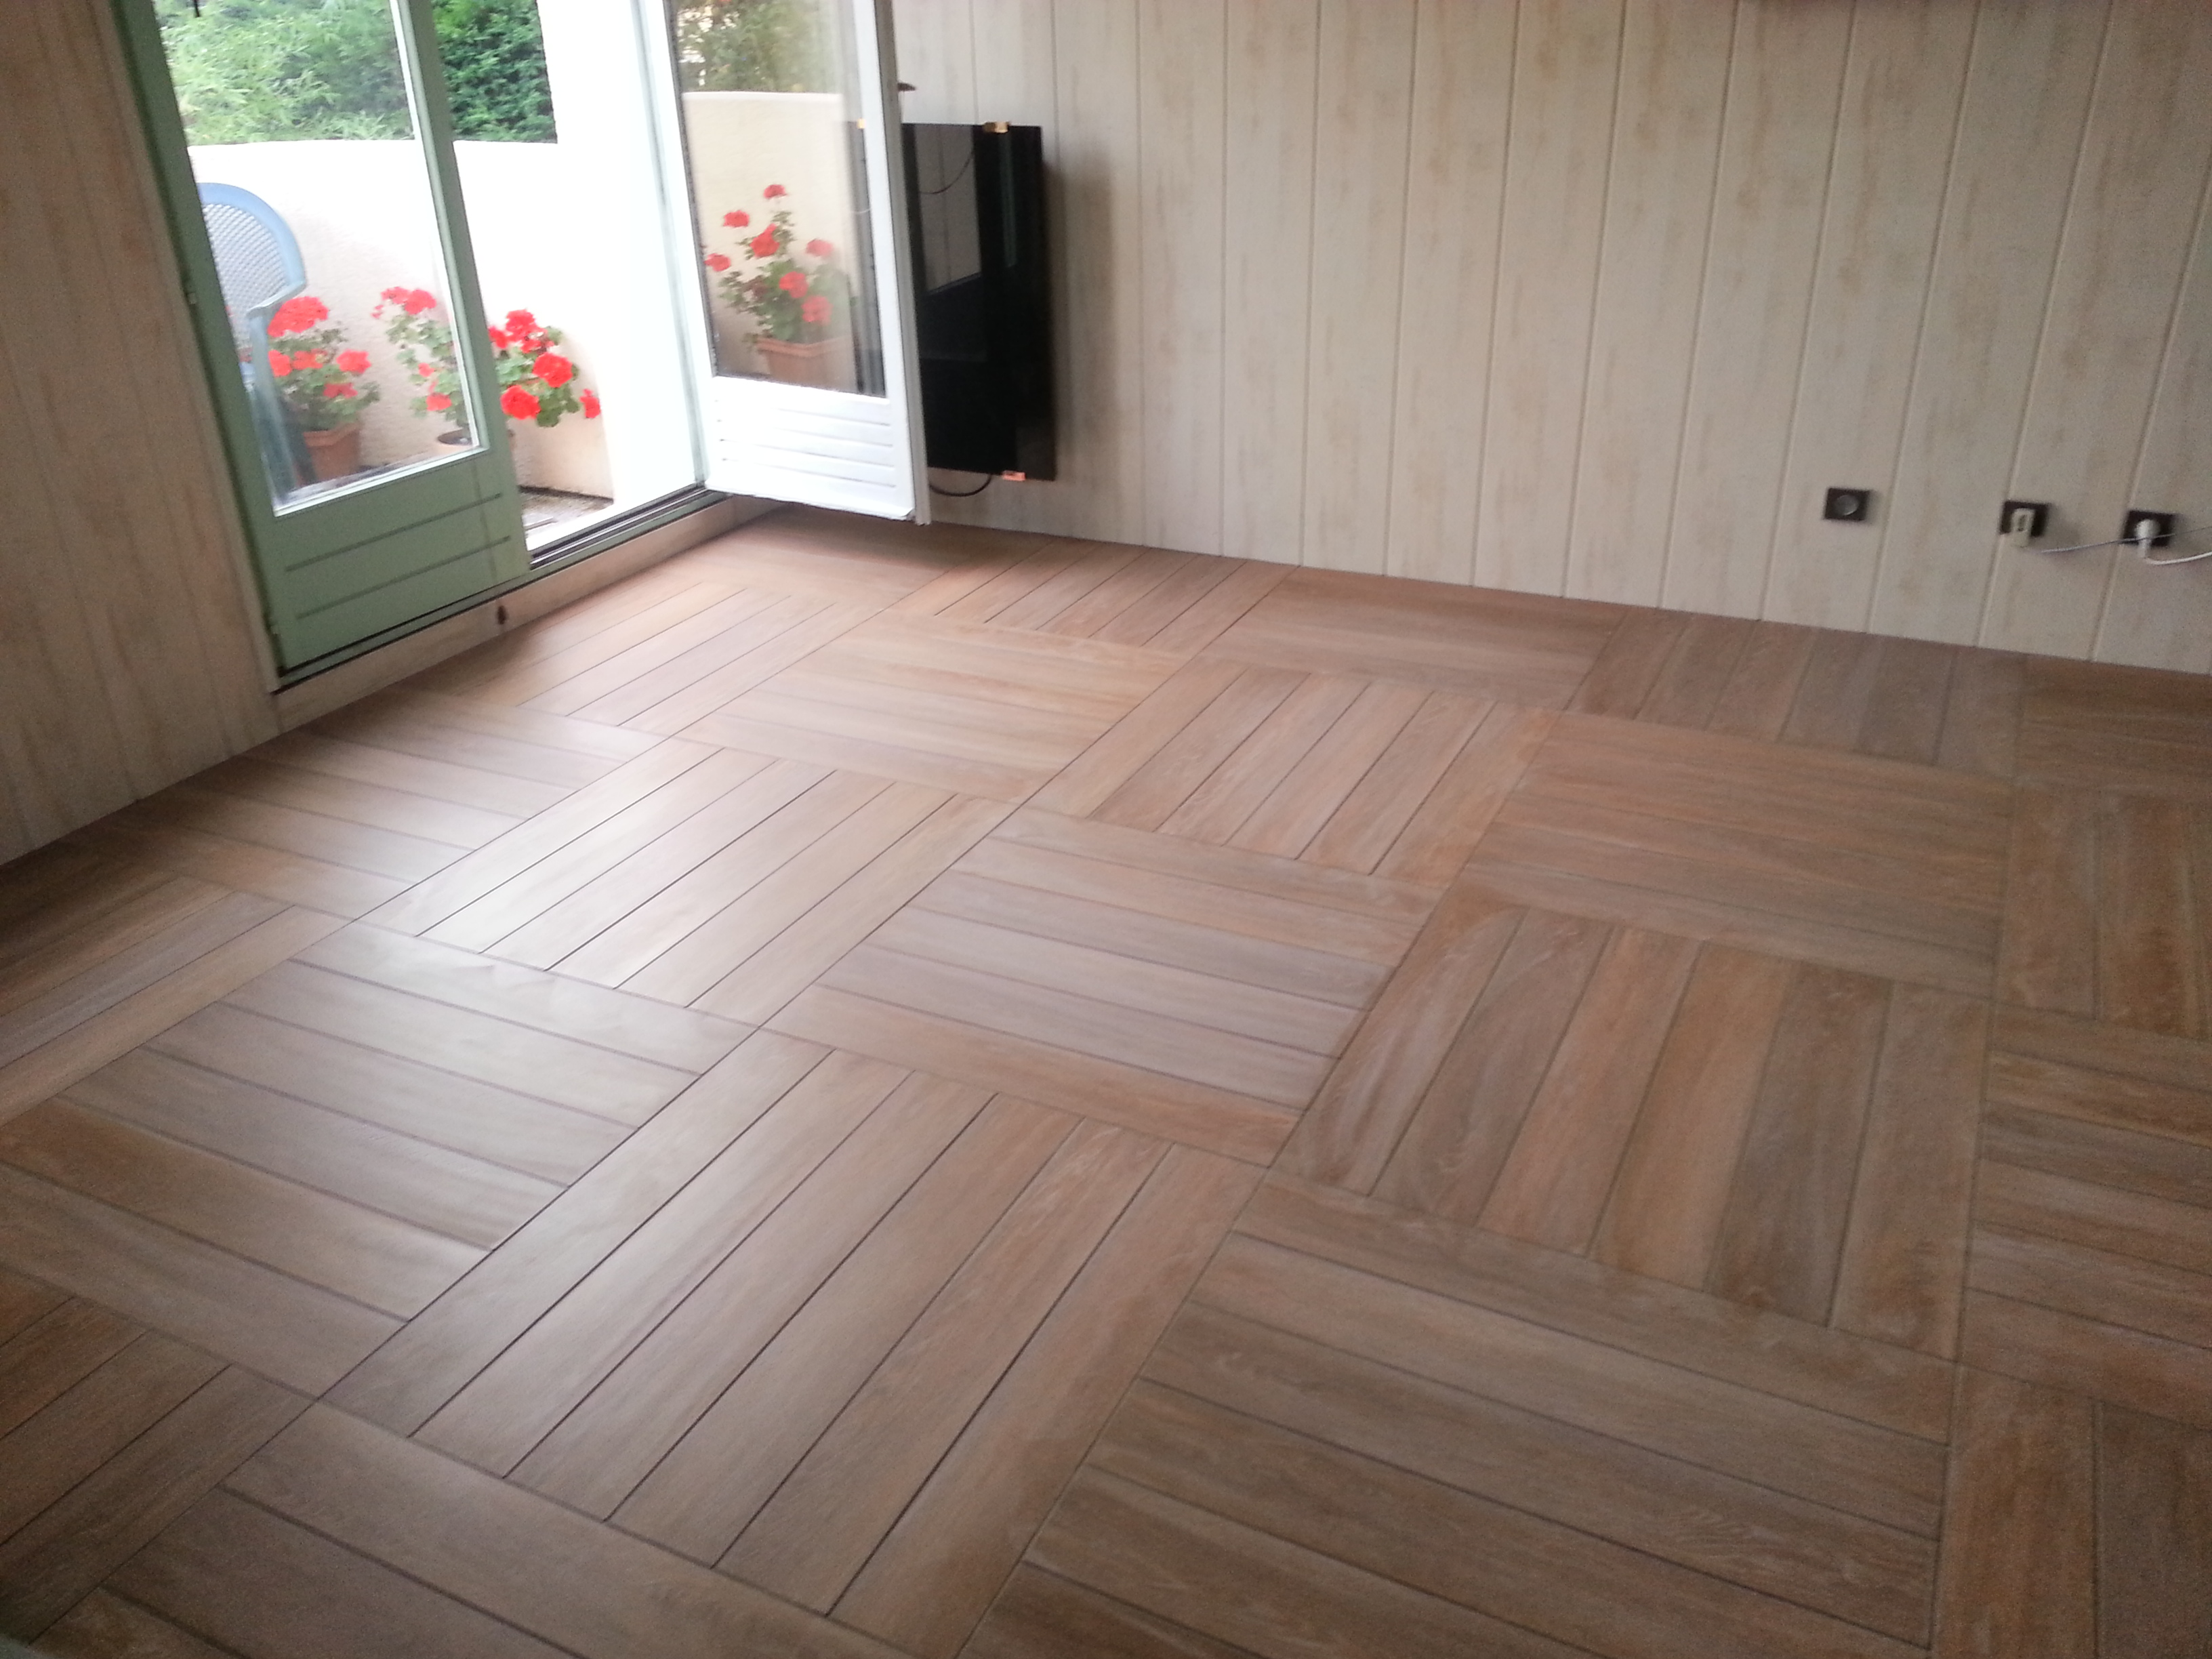 Pose de carrelage imitation parquet for Joint de carrelage noirci